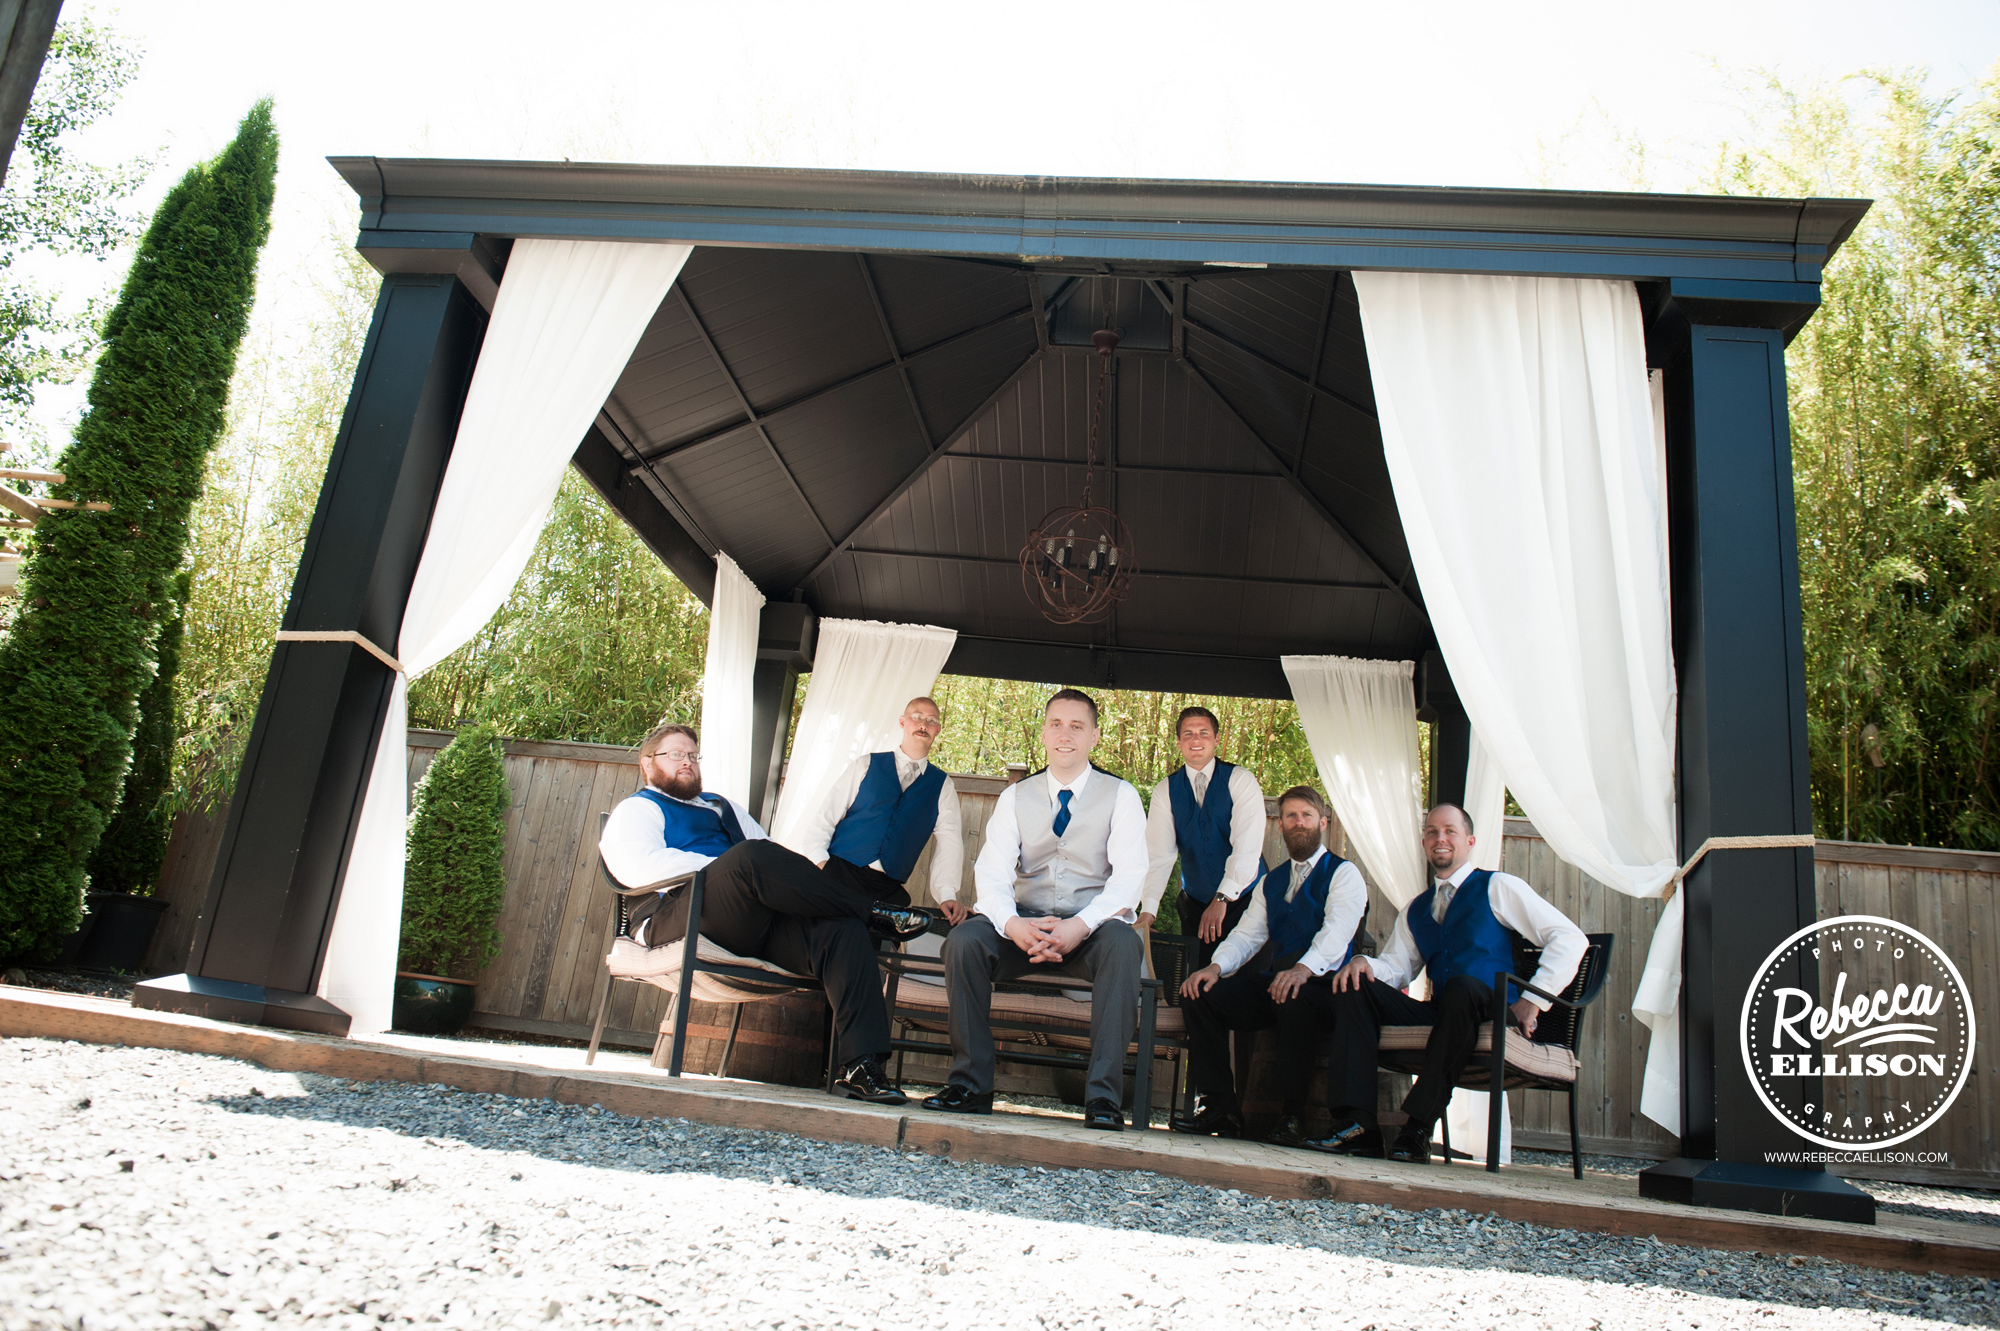 Groom and groomsmen at a peach and blue wedding at Snohomish wedding venue Jardin del sol photography by Rebecca Ellison